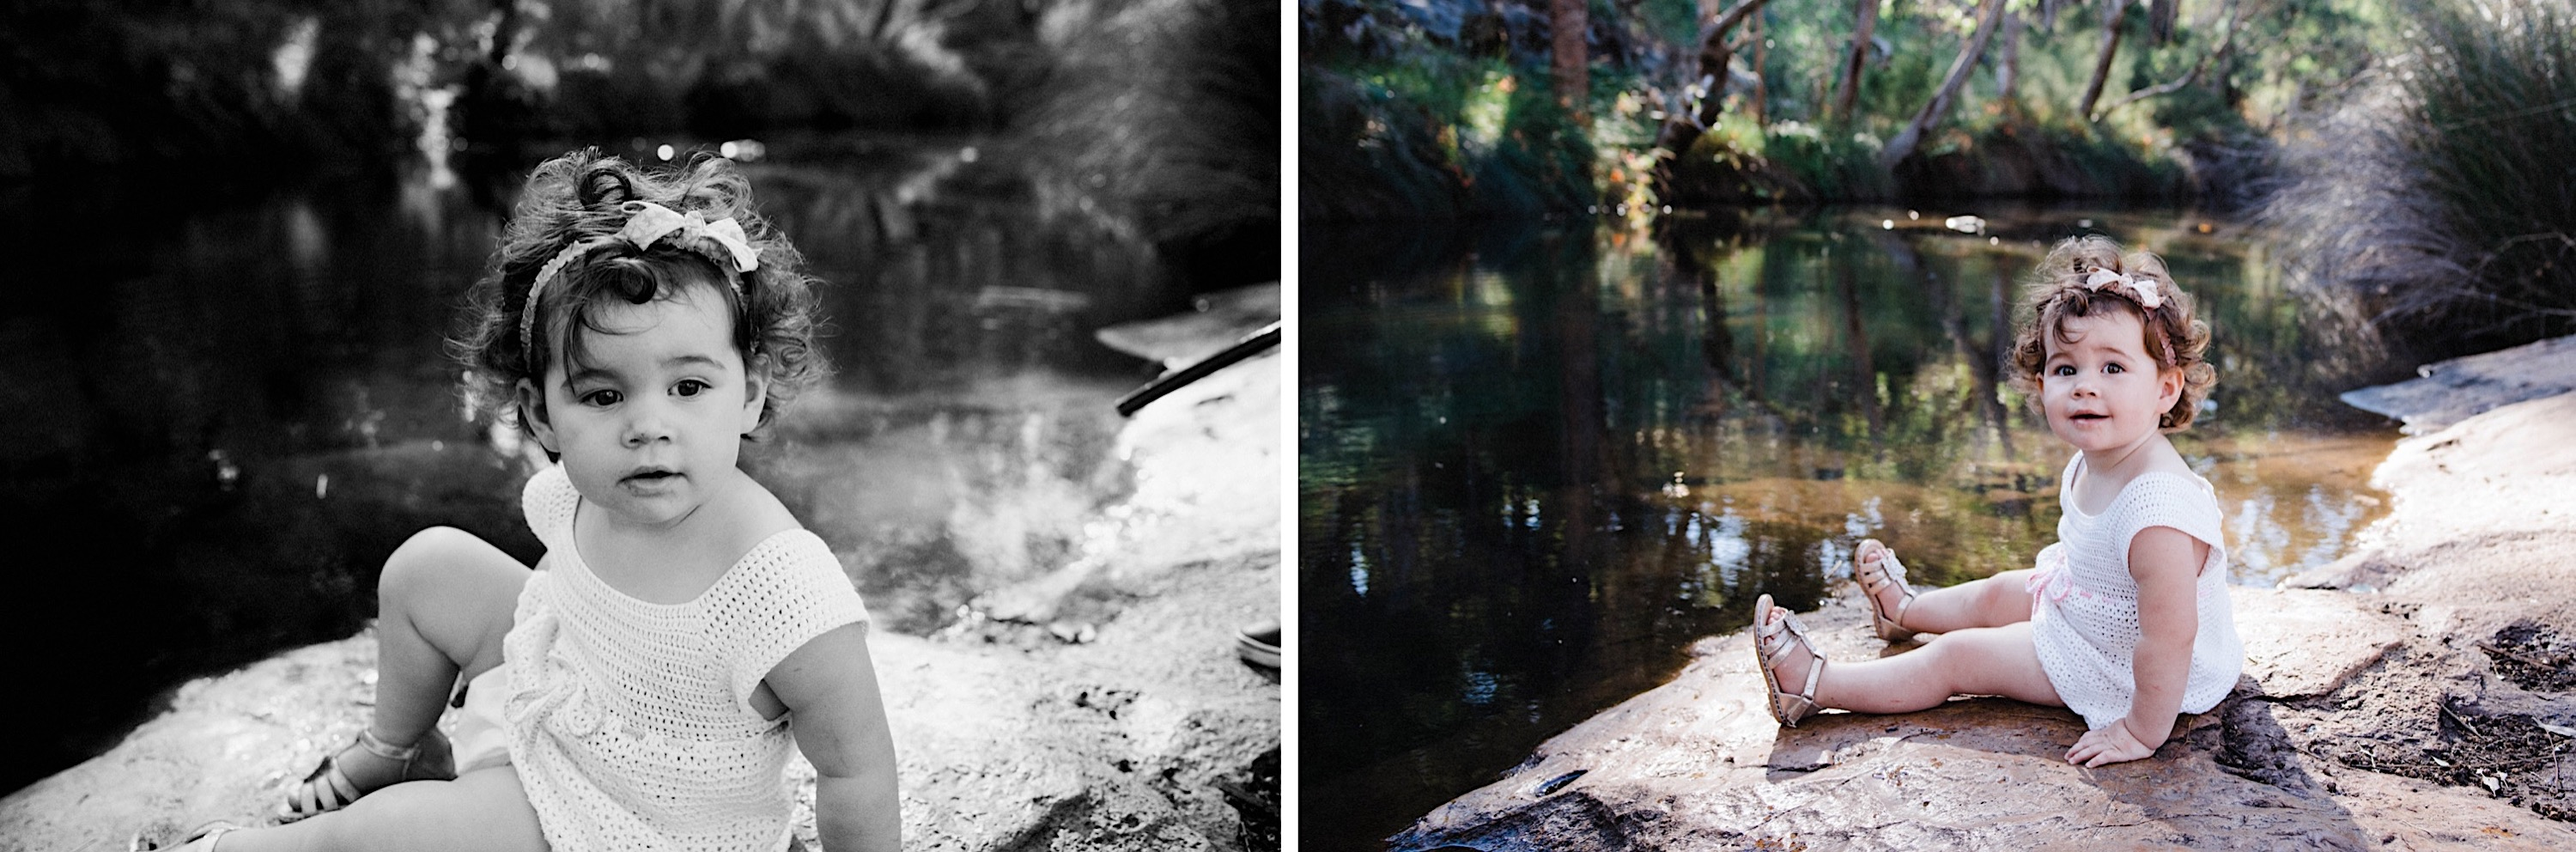 Two photos of a little girl duing a lifestyle family portrait session as she sits on a rock by a creek in Roleystone, Western Australia.